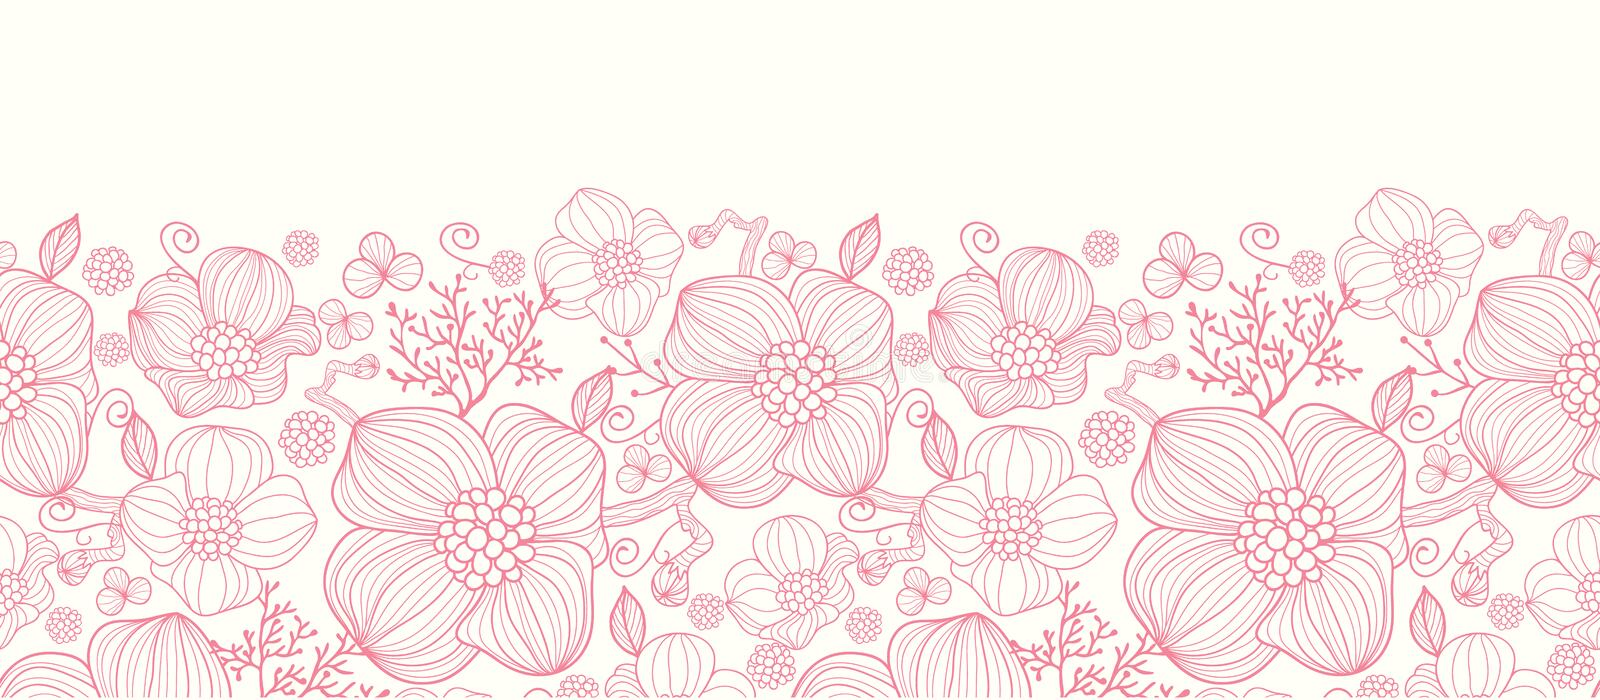 Red Flower Line Drawing : Red line art flowers horizontal seamless pattern royalty